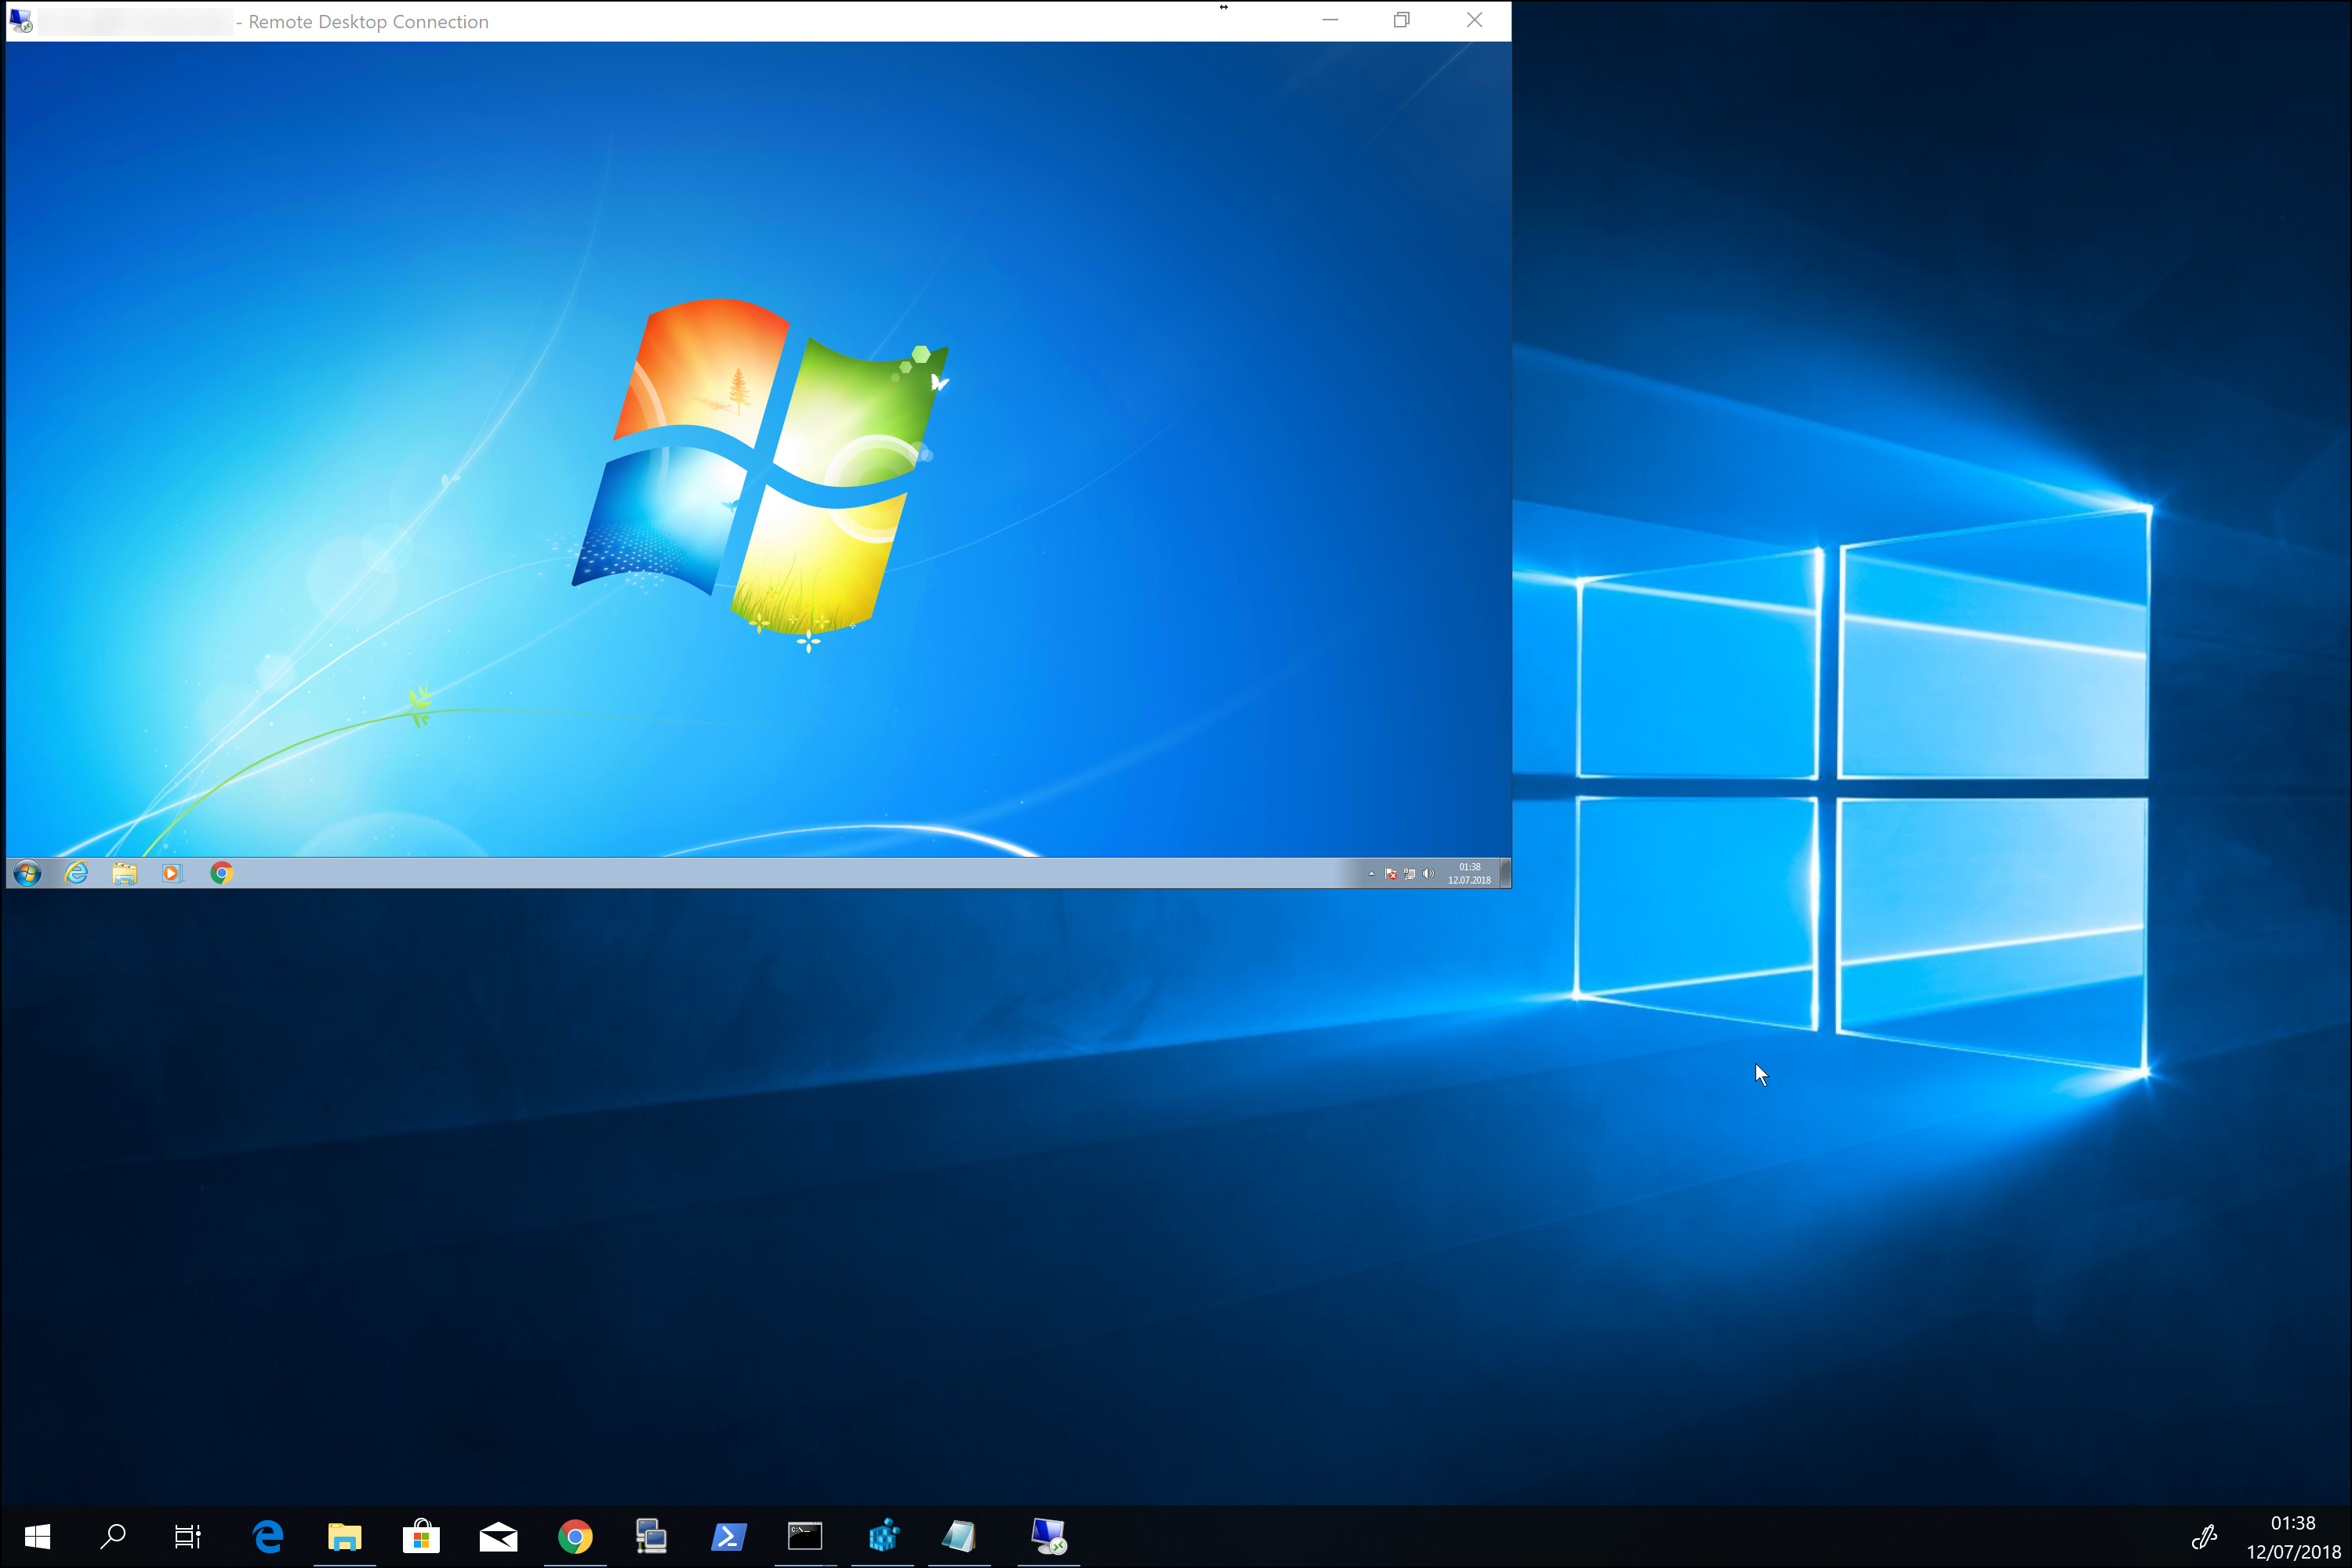 Remote Desktop client on HiDPI (Retina) displays: Work